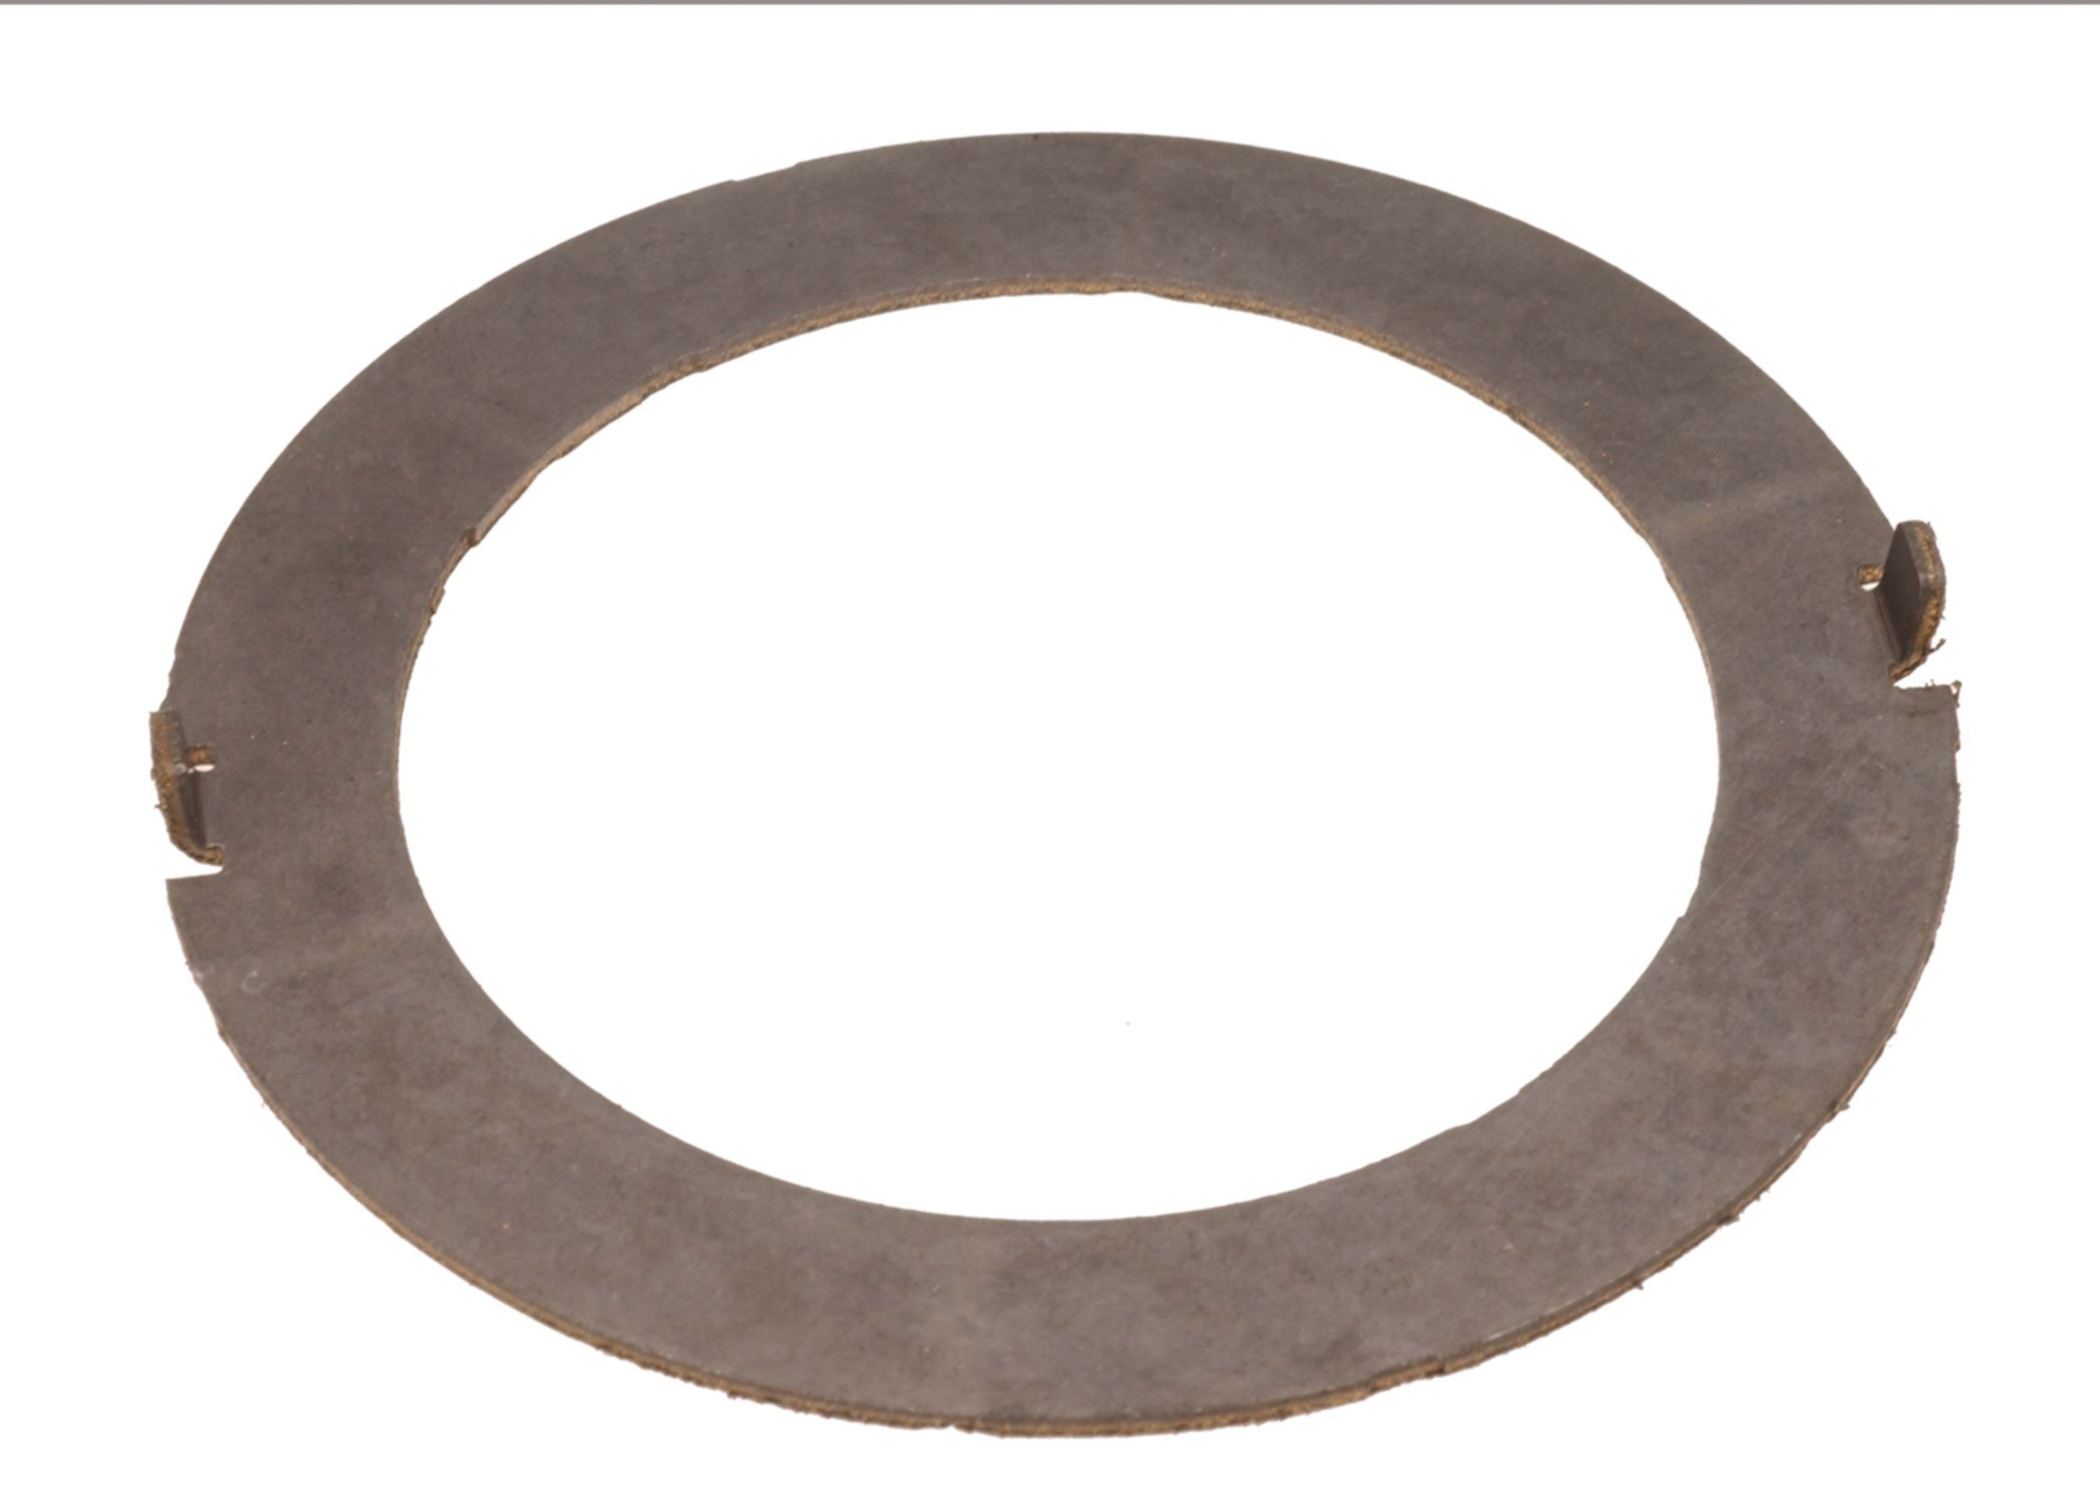 ACDELCO OE SERVICE - 2nd Clutch Housing Thrust Washer - DCB 24204434